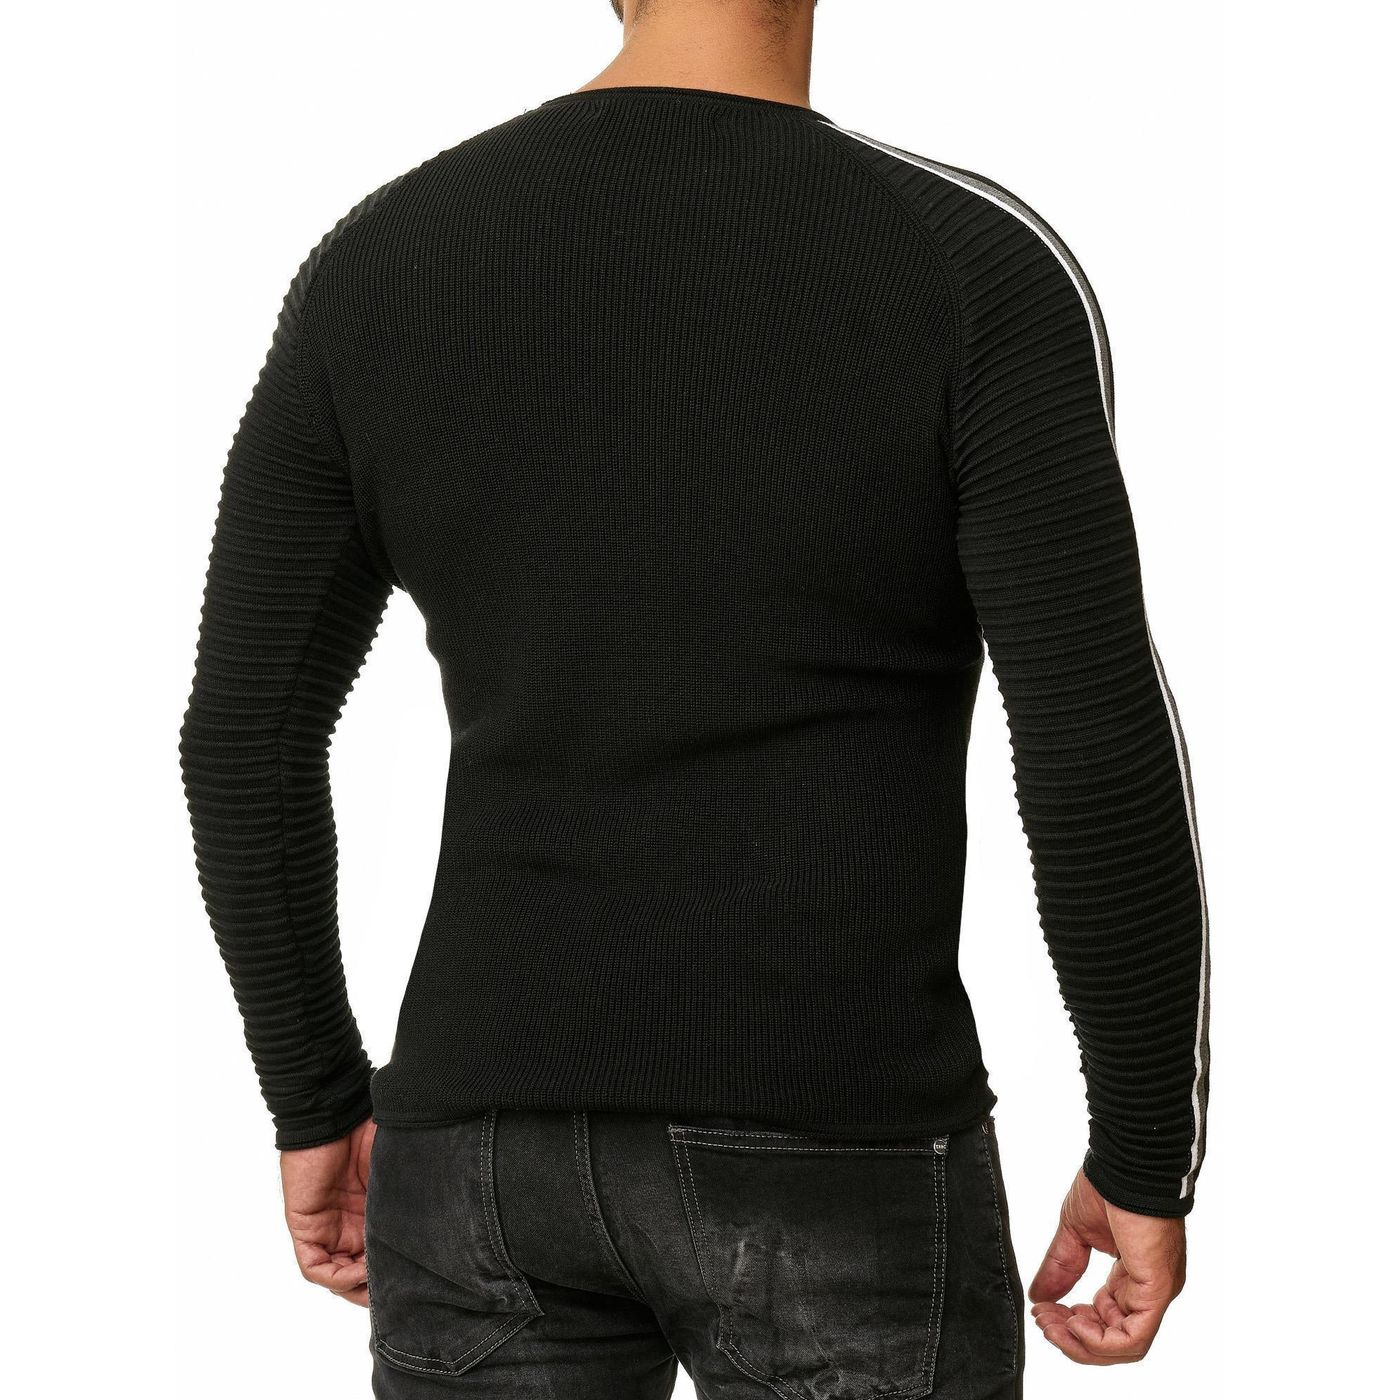 f701d1ebd Red Bridge Herren Strickpullover Ribbed Striped Pullover M3089 ...